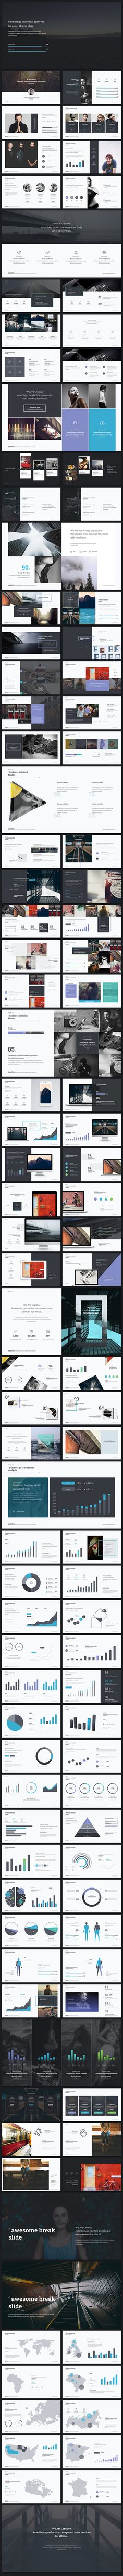 Martin Business PowerPoint Template. Download here: http://graphicriver.net/item/martin-business-themes/15615679?ref=ksioks